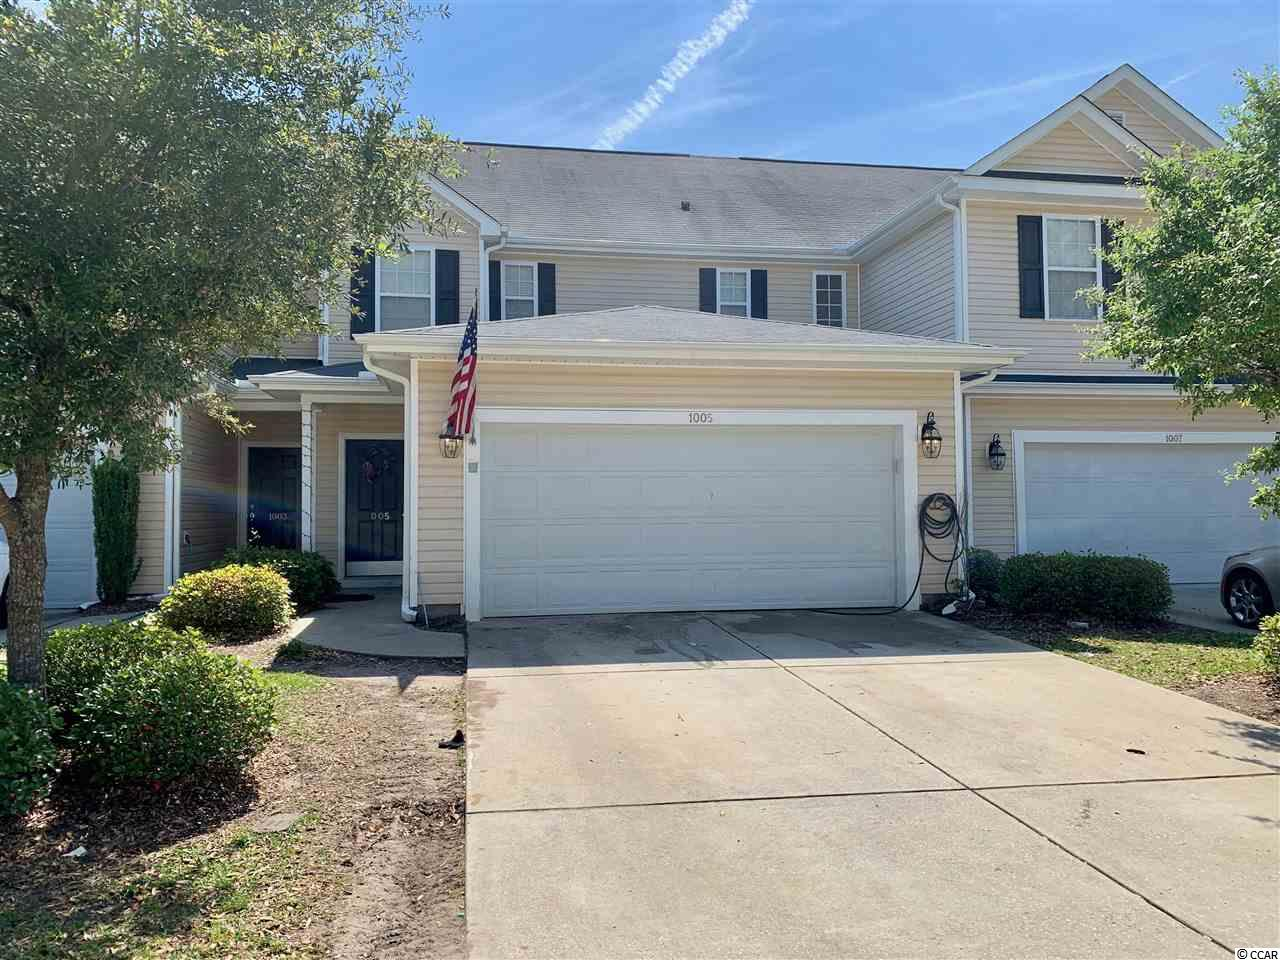 Fantastic investment opportunity in this spacious 3BR/2.5BA townhouse located close to university, Conway Medical Center, golf, shopping, restaurants & so much.  This floorplan features master bedroom on first floor 2 large bedrooms upstairs as well as loft area. HVAC system was replaced in 2018. Square footage is approximate and not guaranteed.  Buyer is responsible for verification